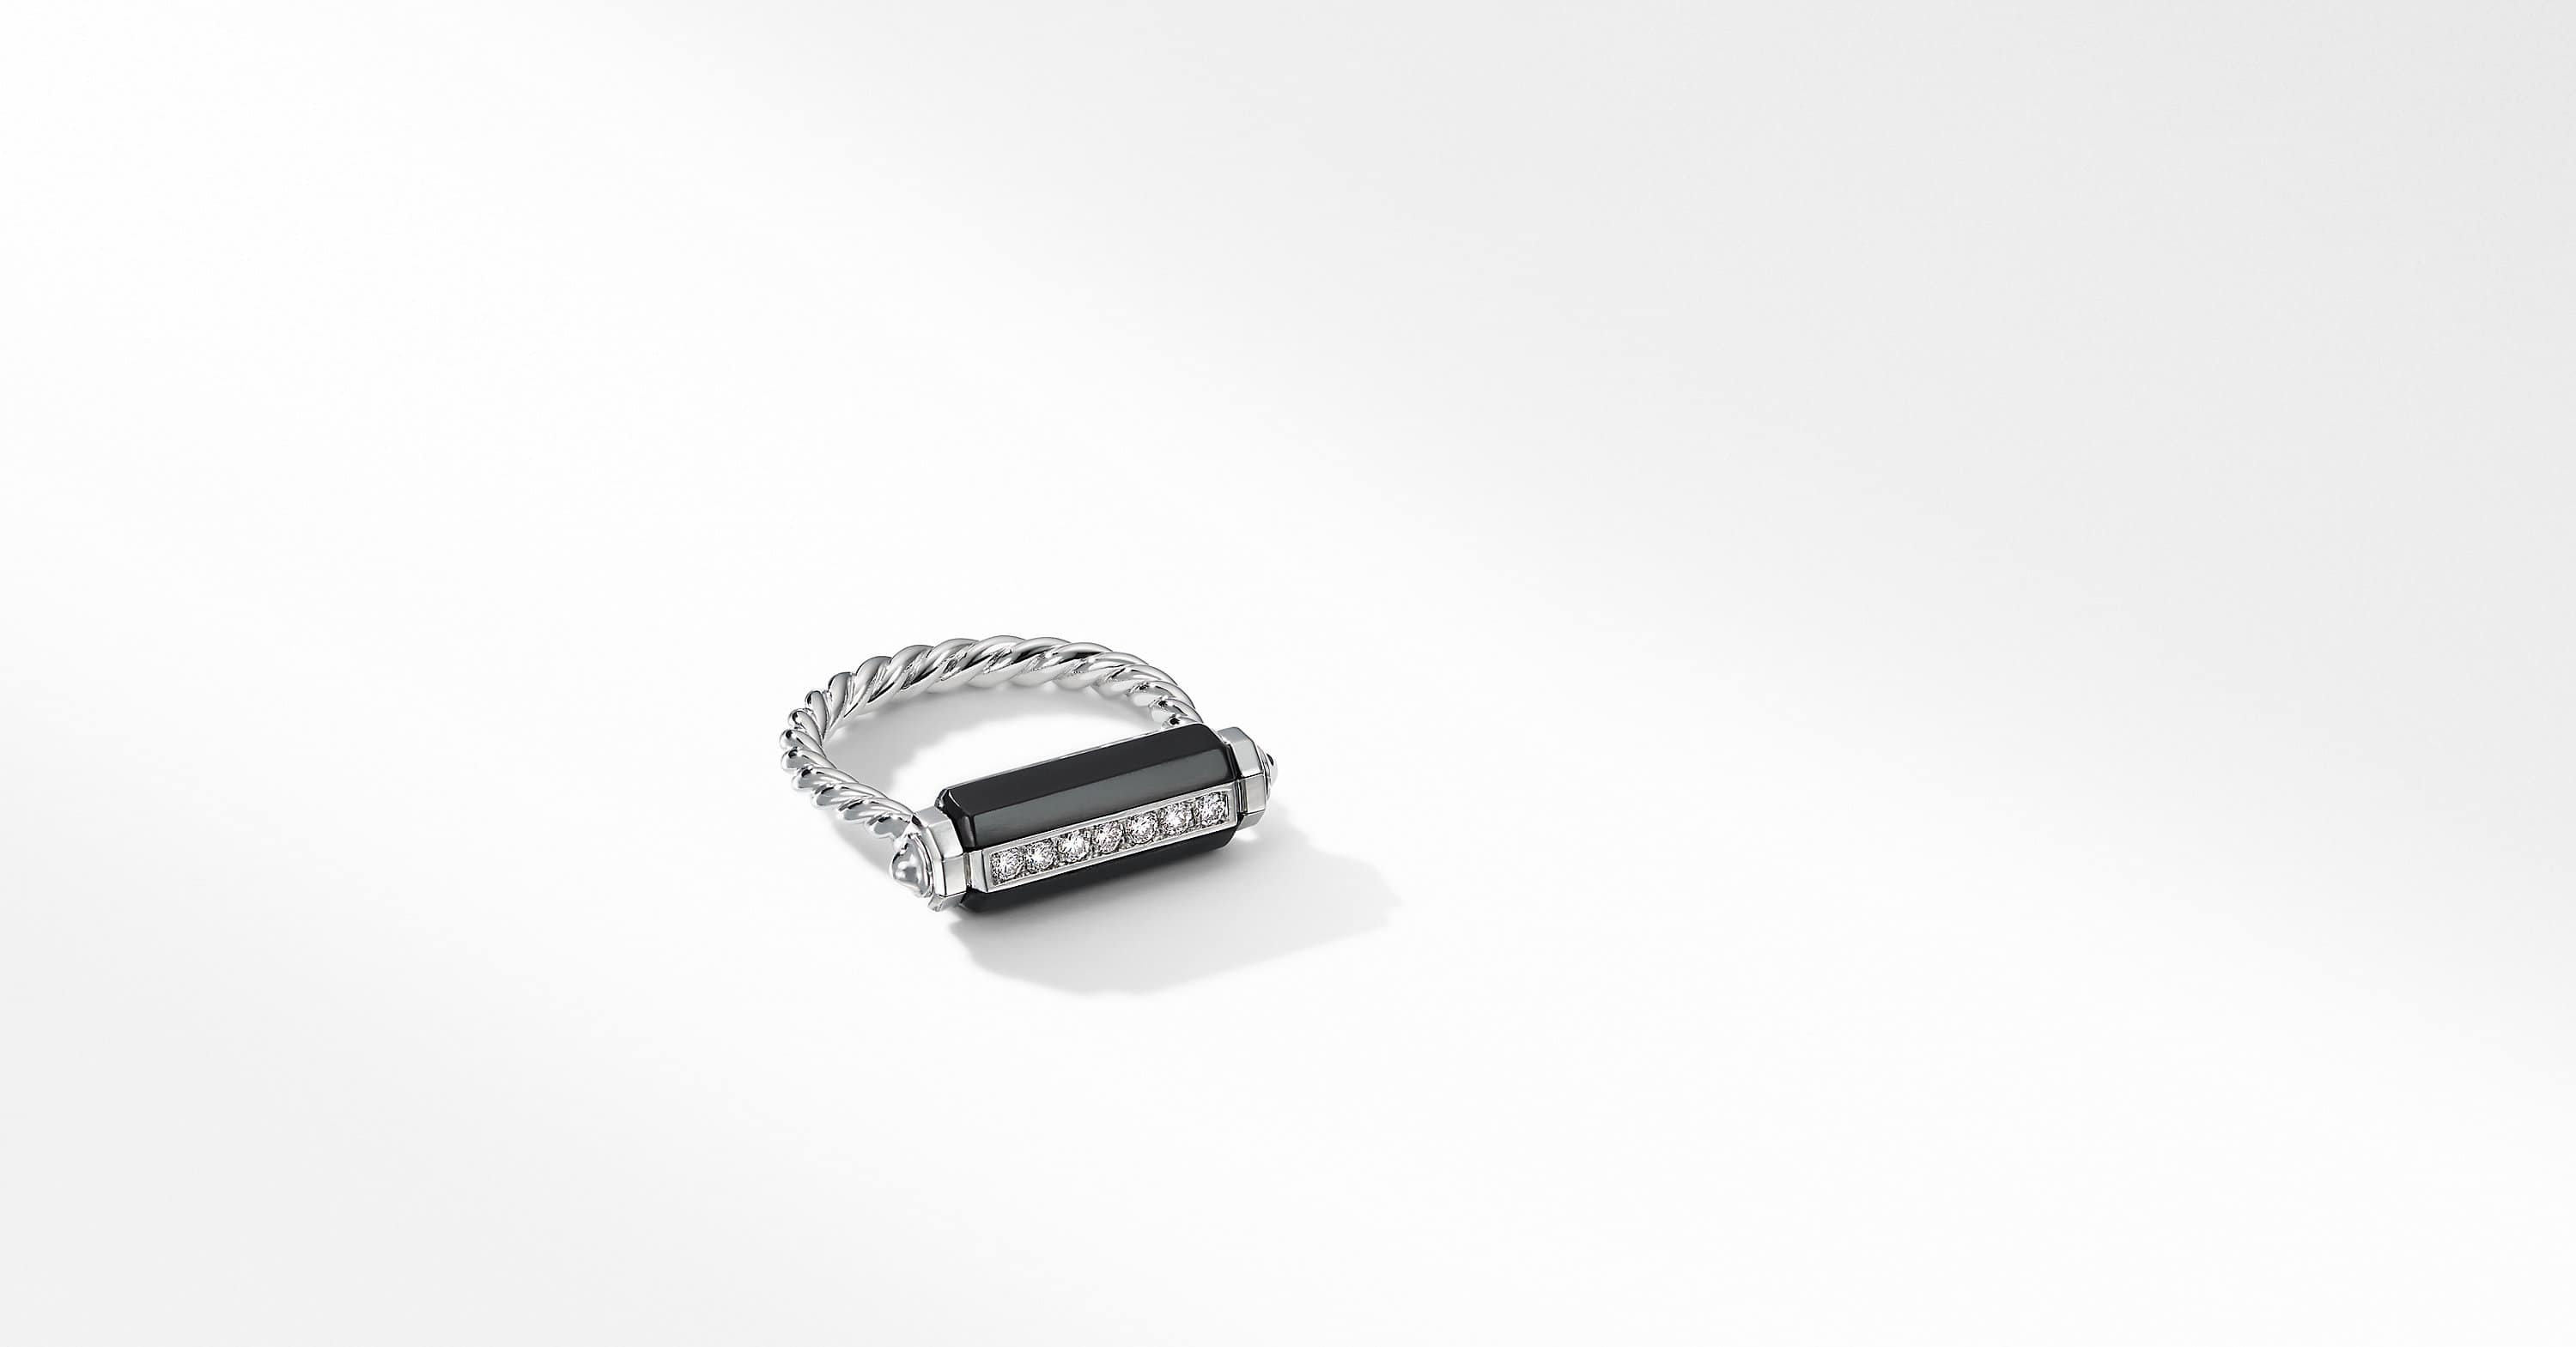 Lexington Barrel Ring with Diamonds